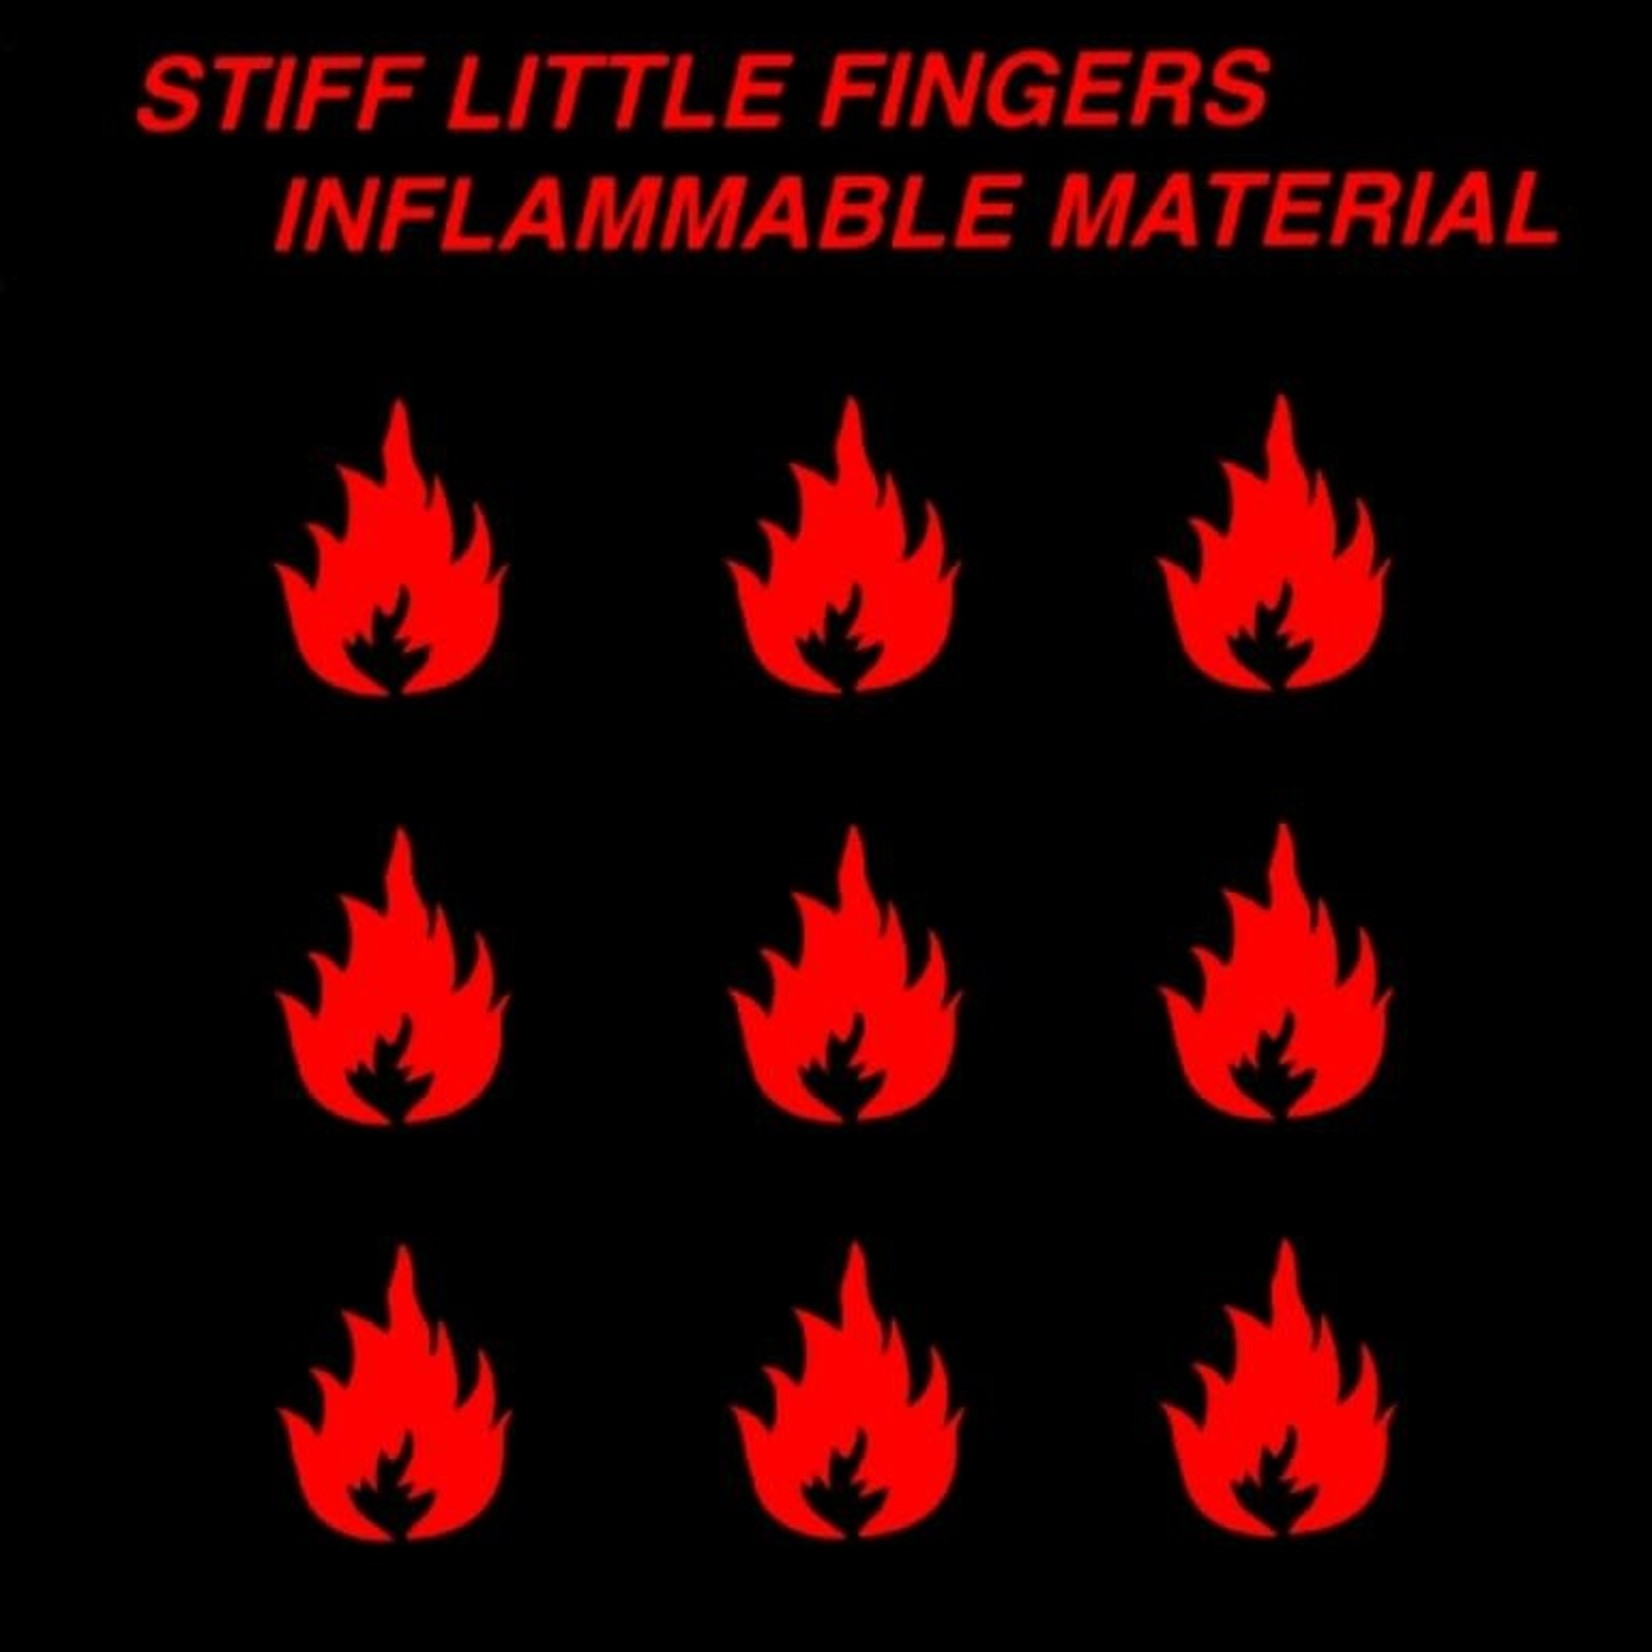 Vinyl Stiff Little Fingers - Inflammable Material